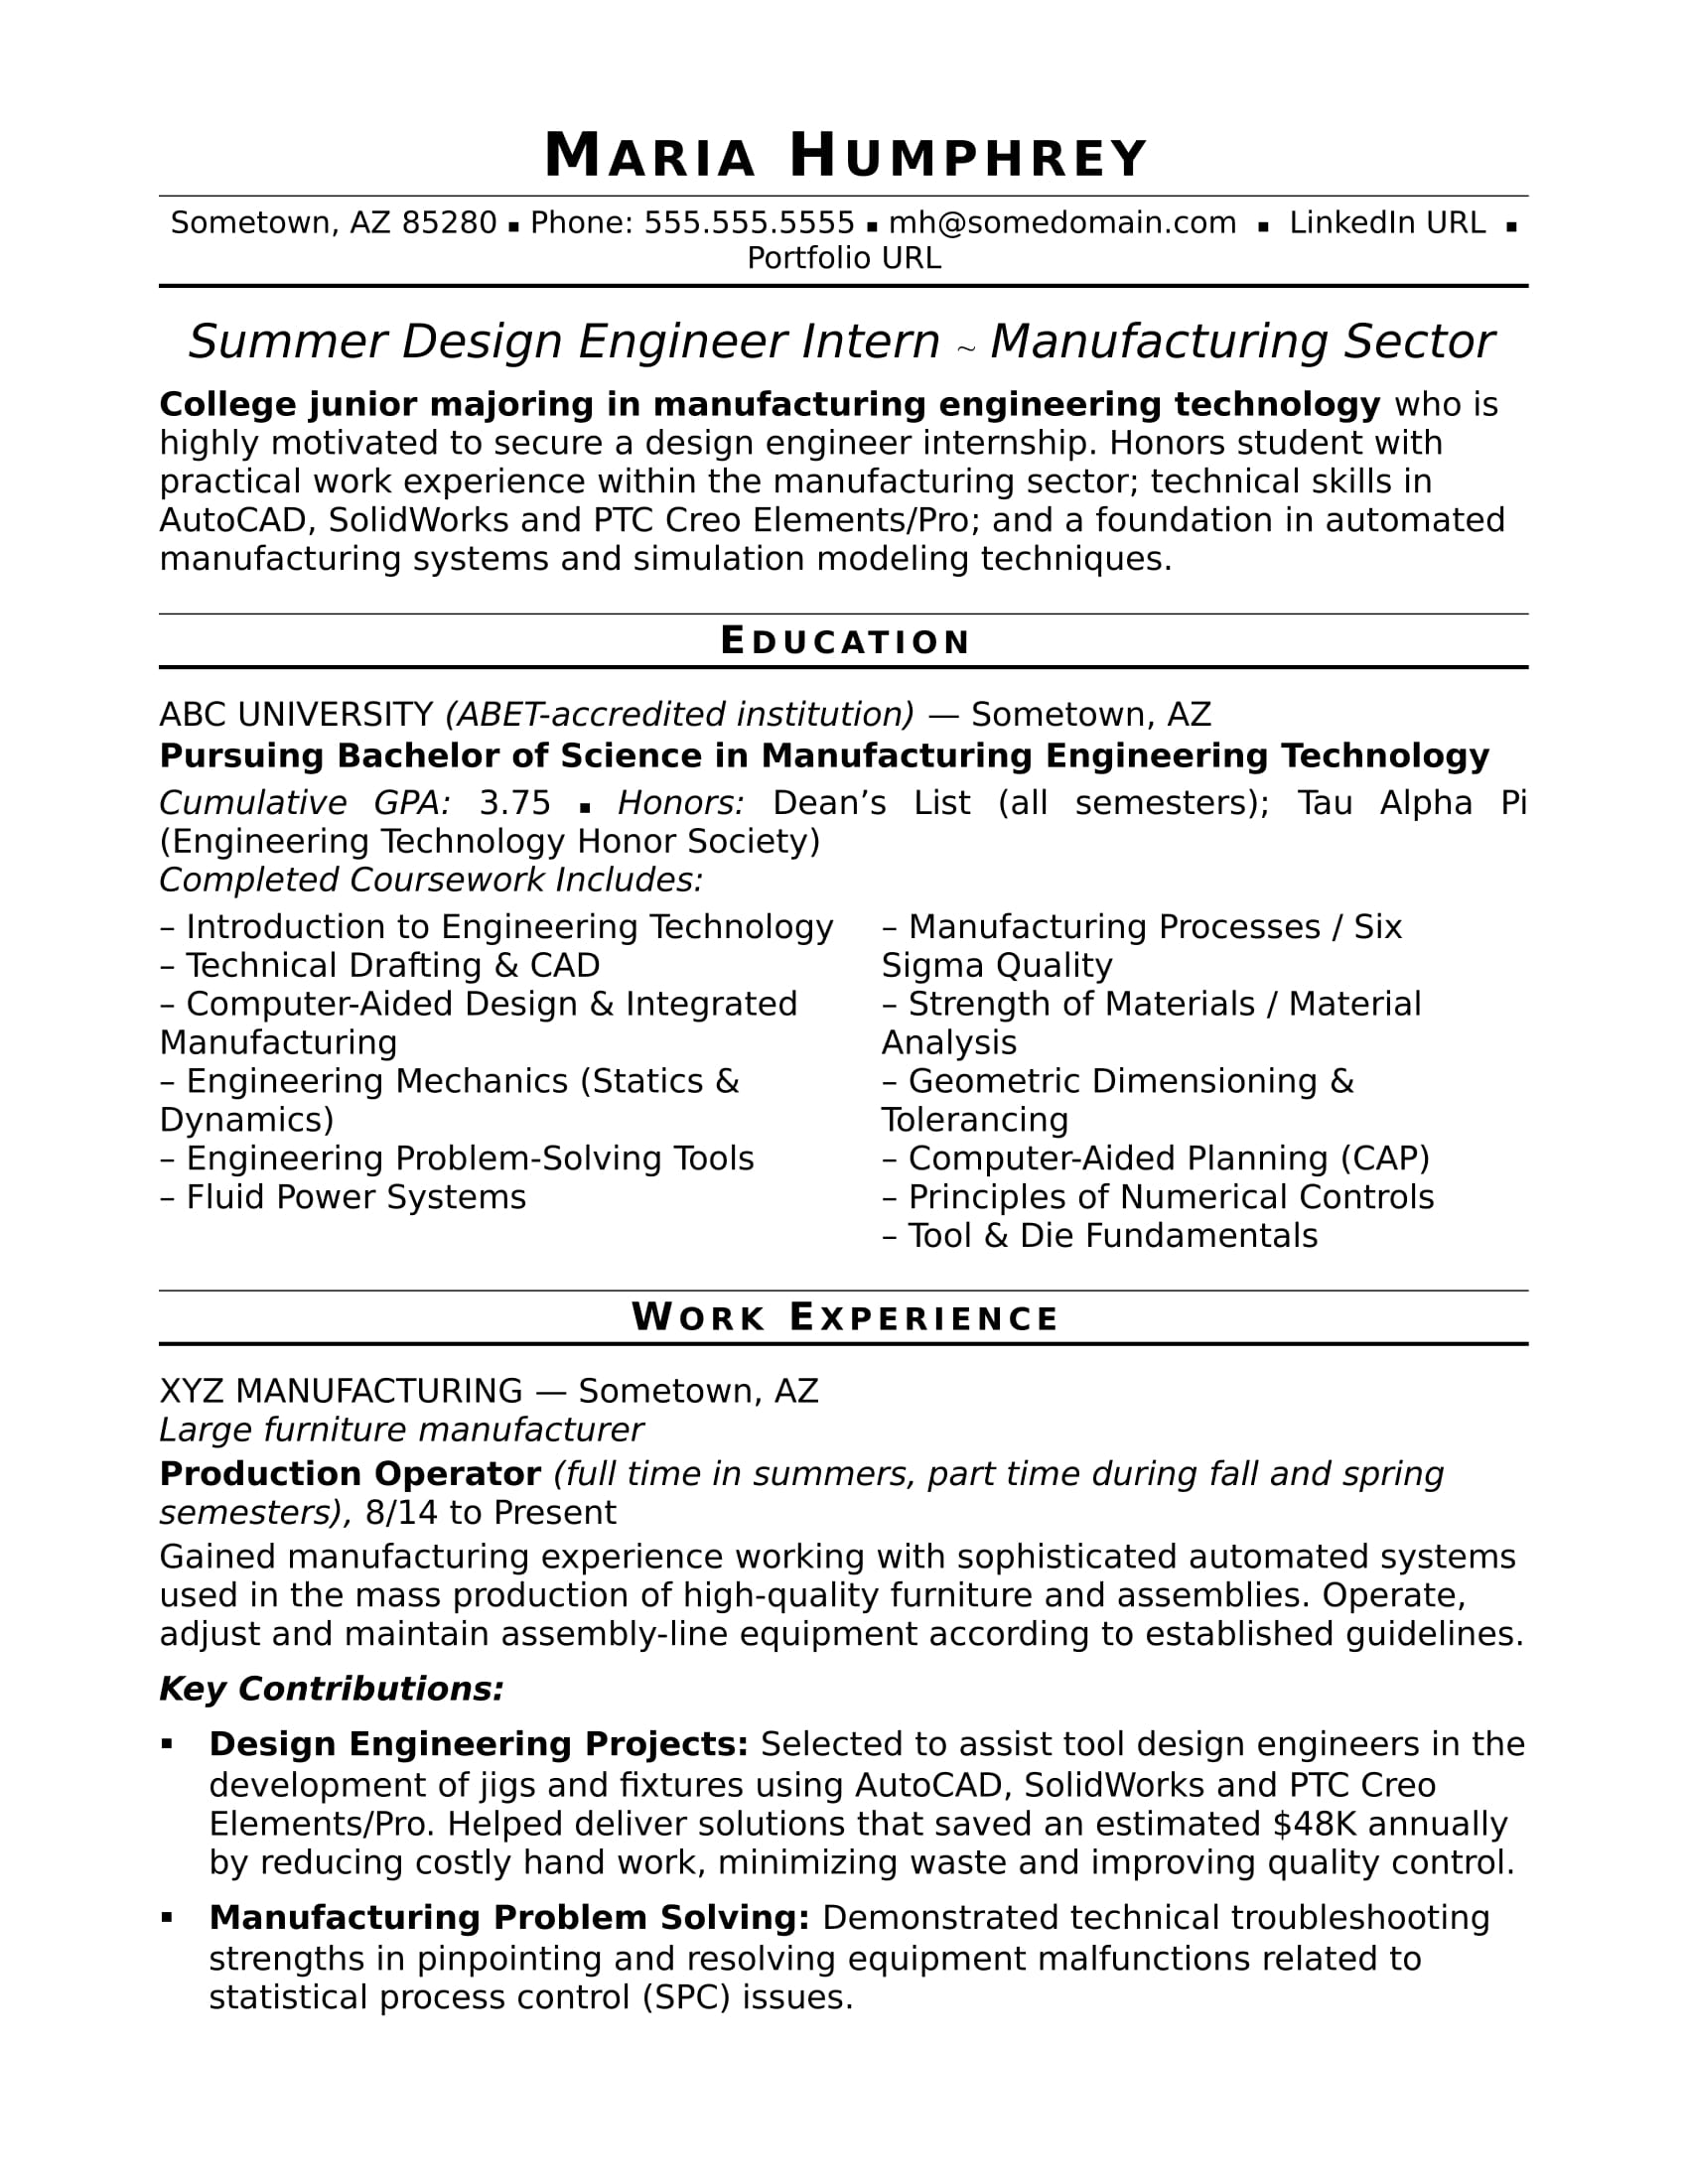 sample resume for an entry level design engineer monster mechanical engineering examples Resume Entry Level Mechanical Engineering Resume Examples